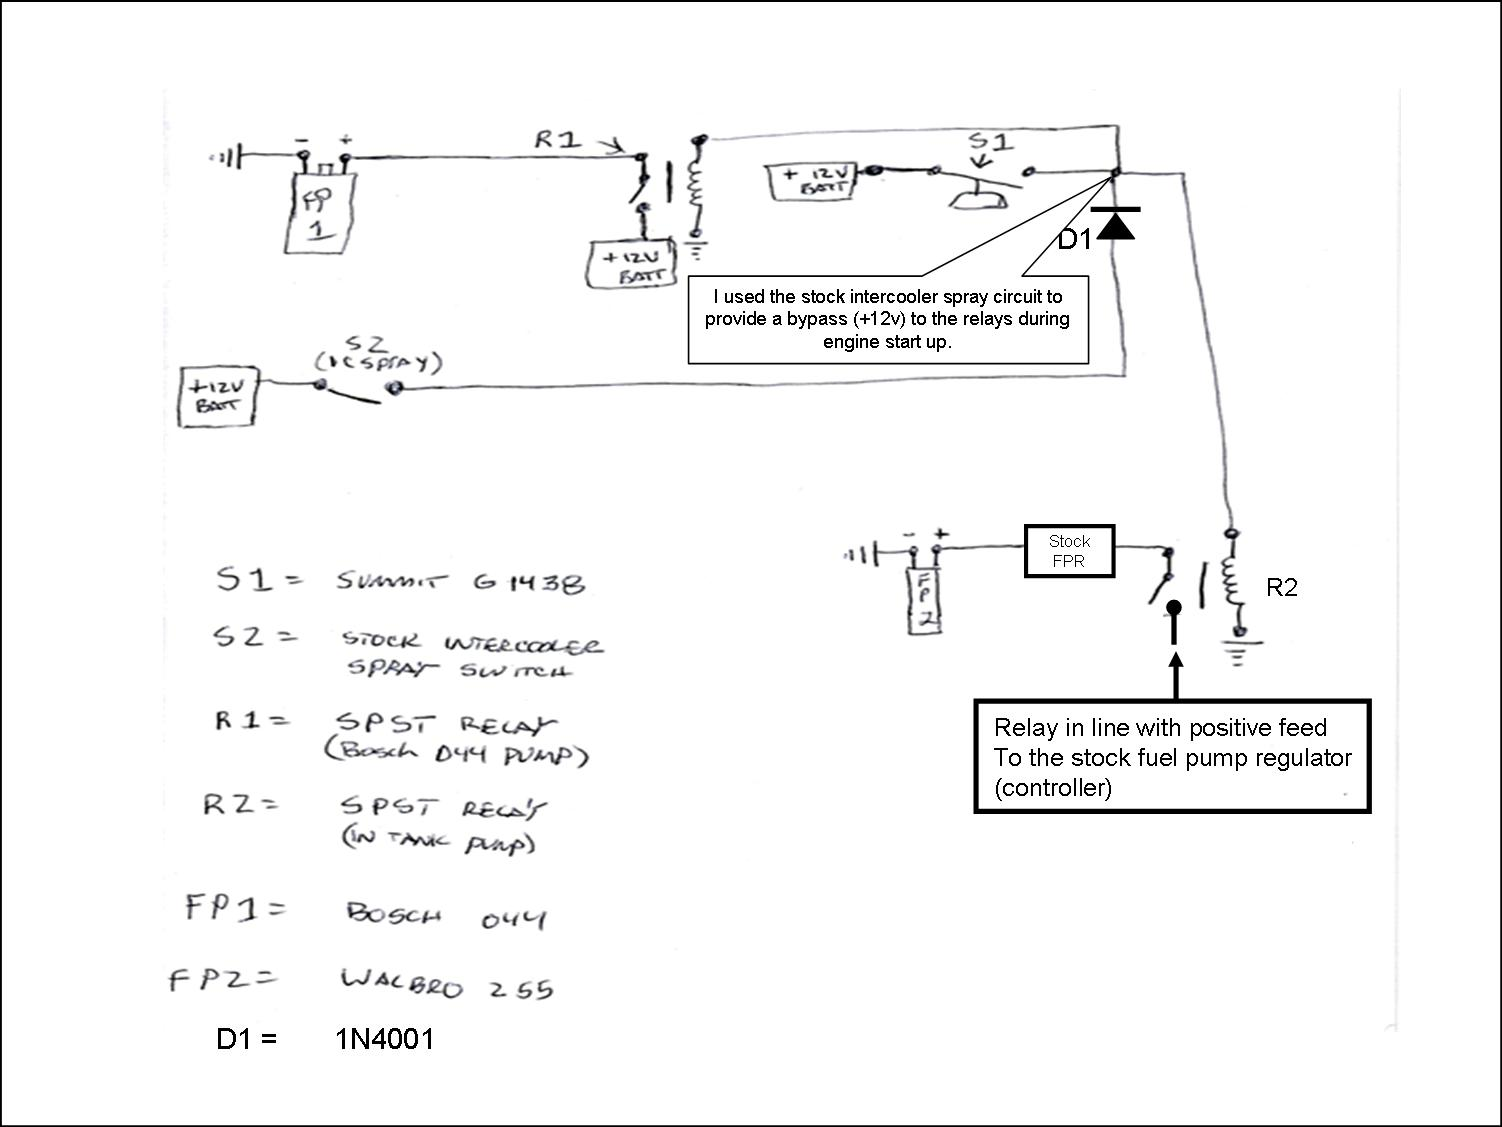 05 Sti Stock Fuel Pump Wiring Help Nasioc Bosch Relay Diagram Car Audio This Image Has Been Resized Click Bar To View The Full Original Is Sized 1502x1127